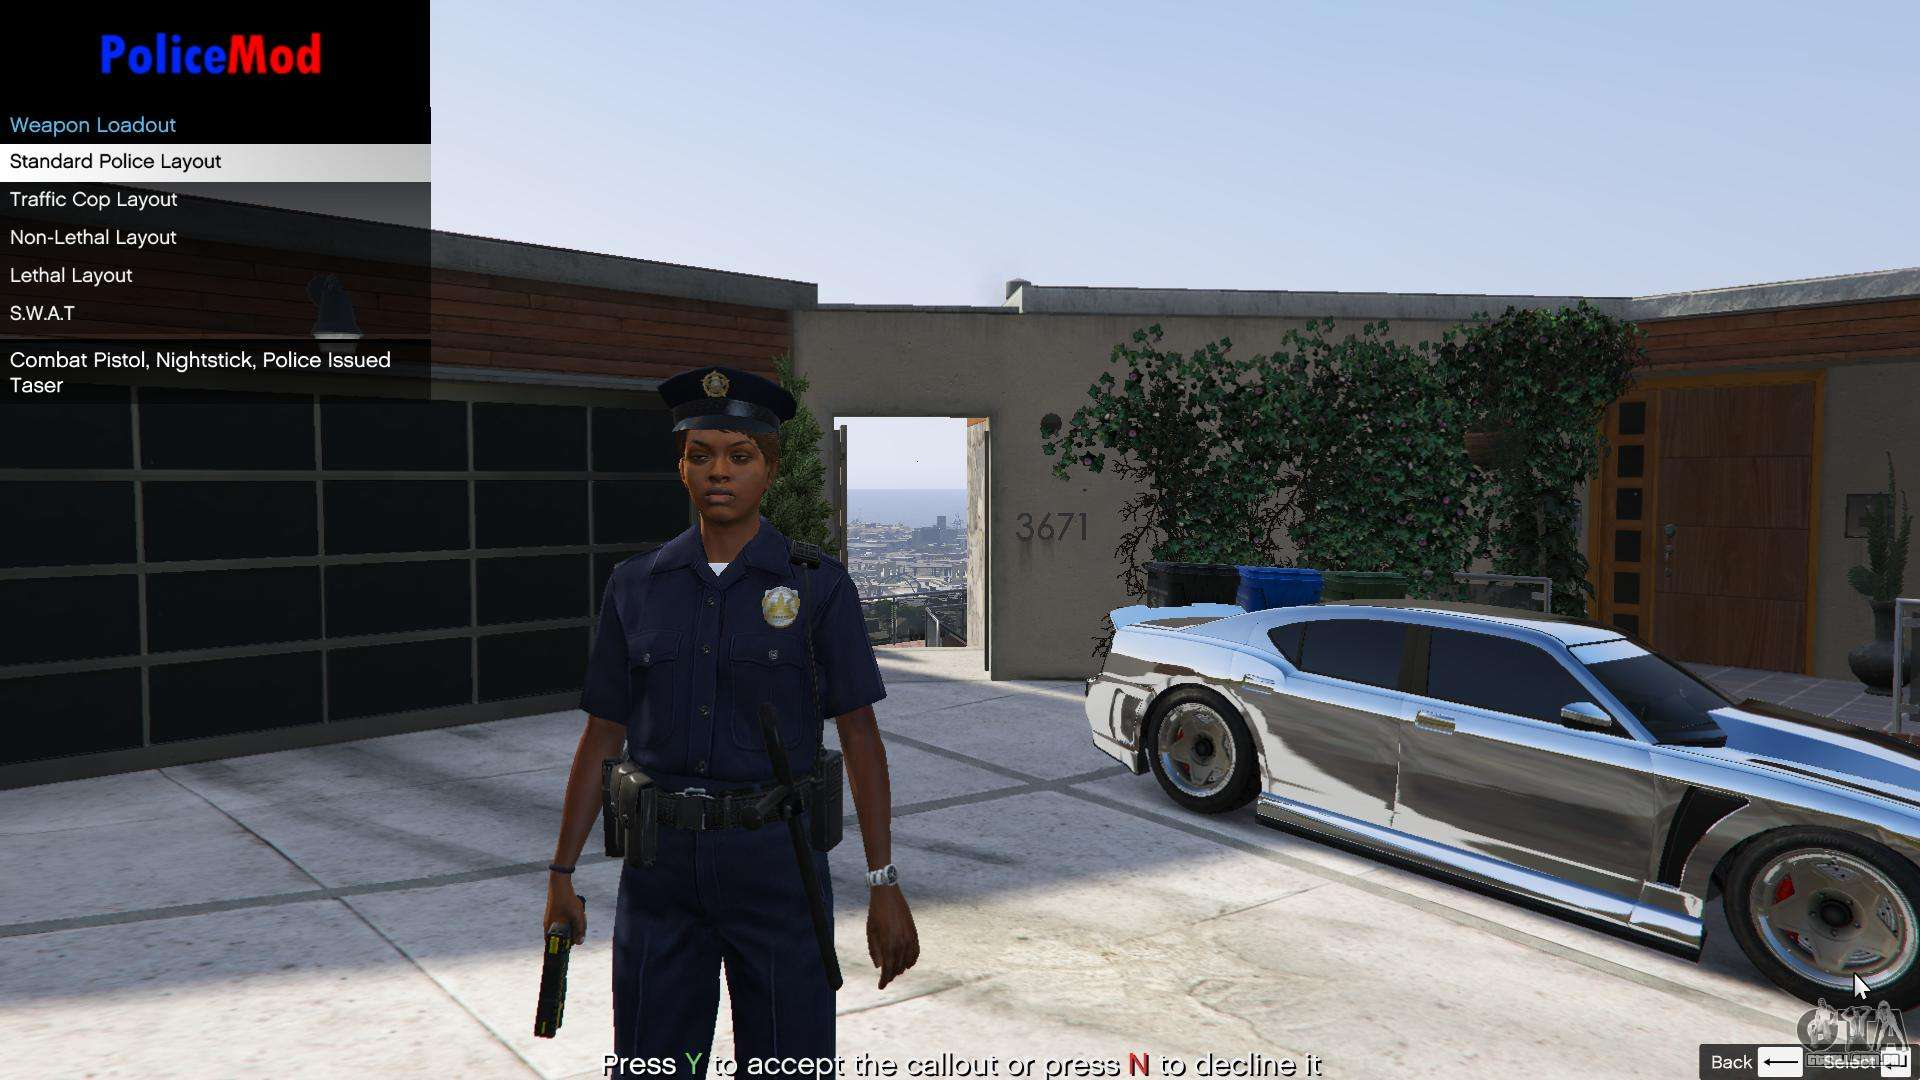 Trucos En Profundidad Gta Iv together with Gtasanandreasmisterixmod blogspot together with Watch together with Watch furthermore 14254 Tainstvennoe Nlo V Zone 51. on motos gta 5